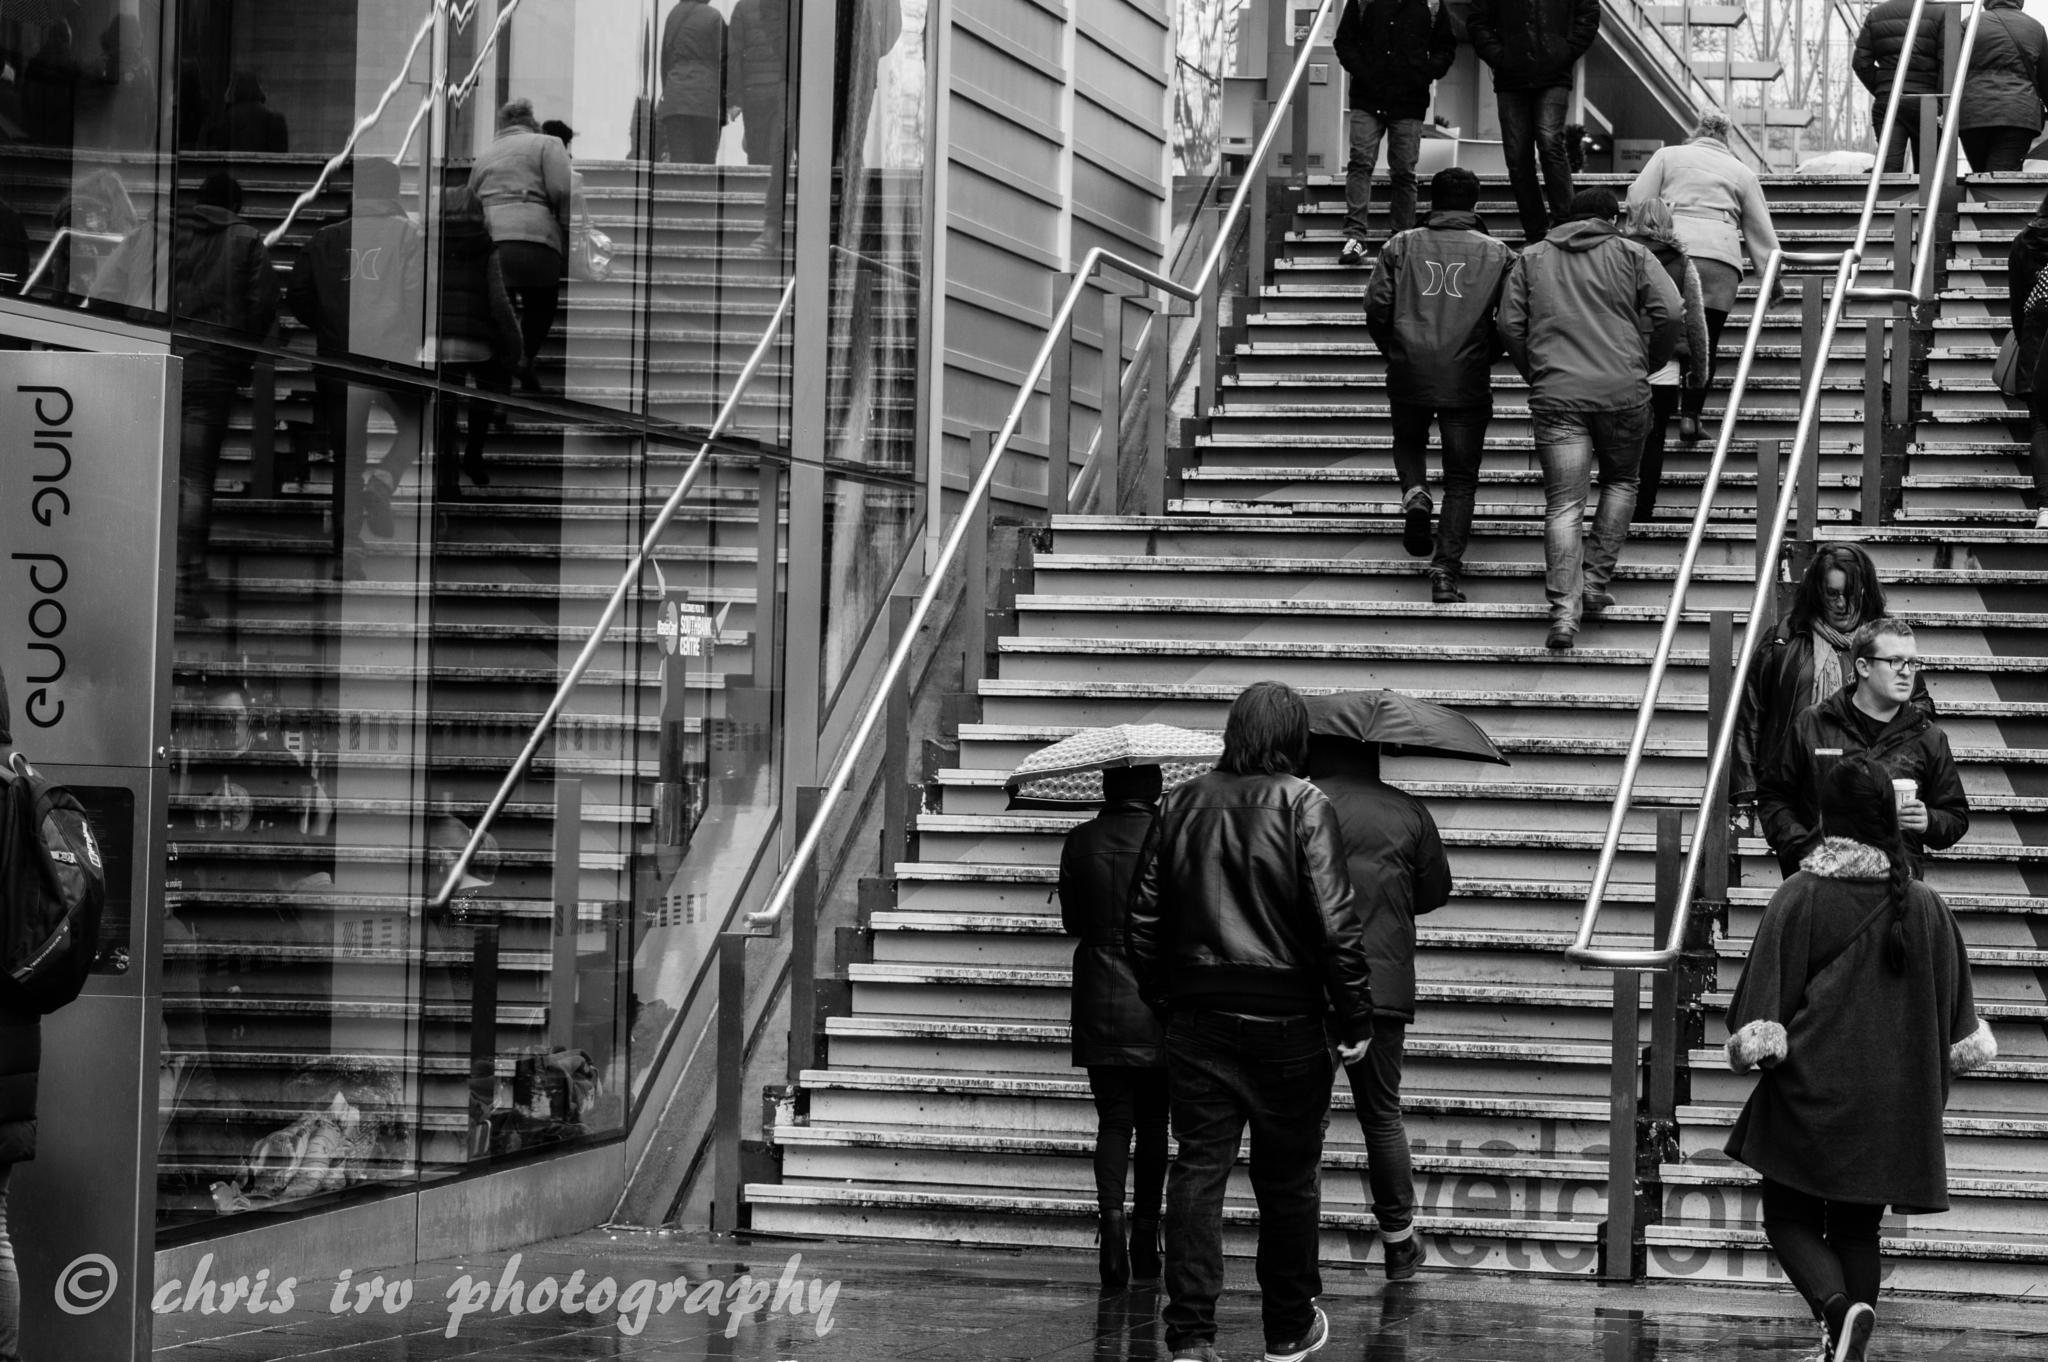 reflections on the stairs by chrisirv